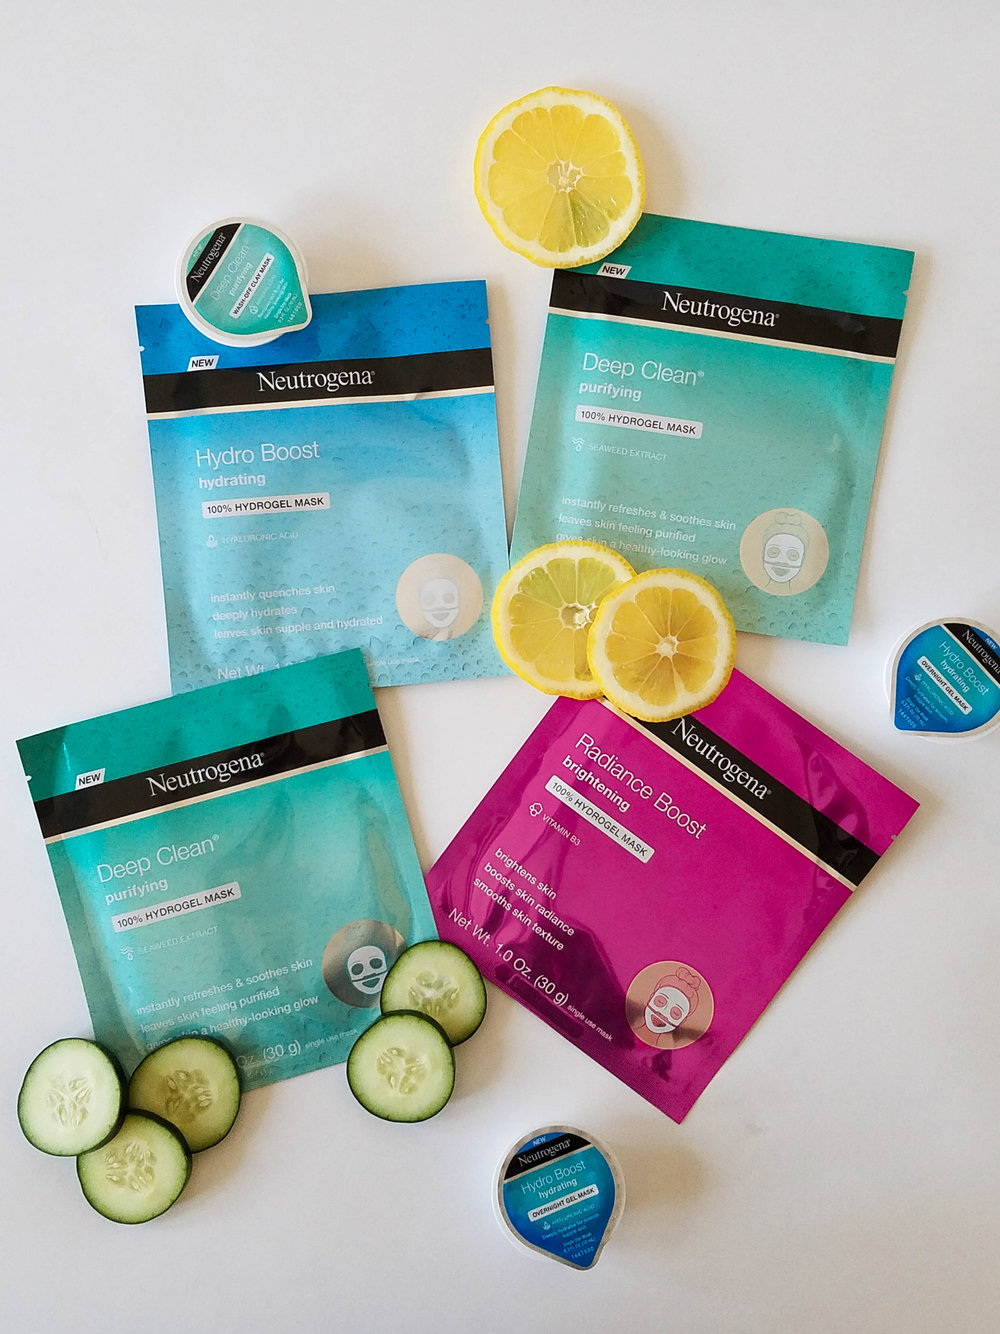 On the Go : Elissa is always traveling so she loves to have travel size products to pack in her bag. These on the go masks are perfect for re-energizing your skin to unwind after an eventful day.